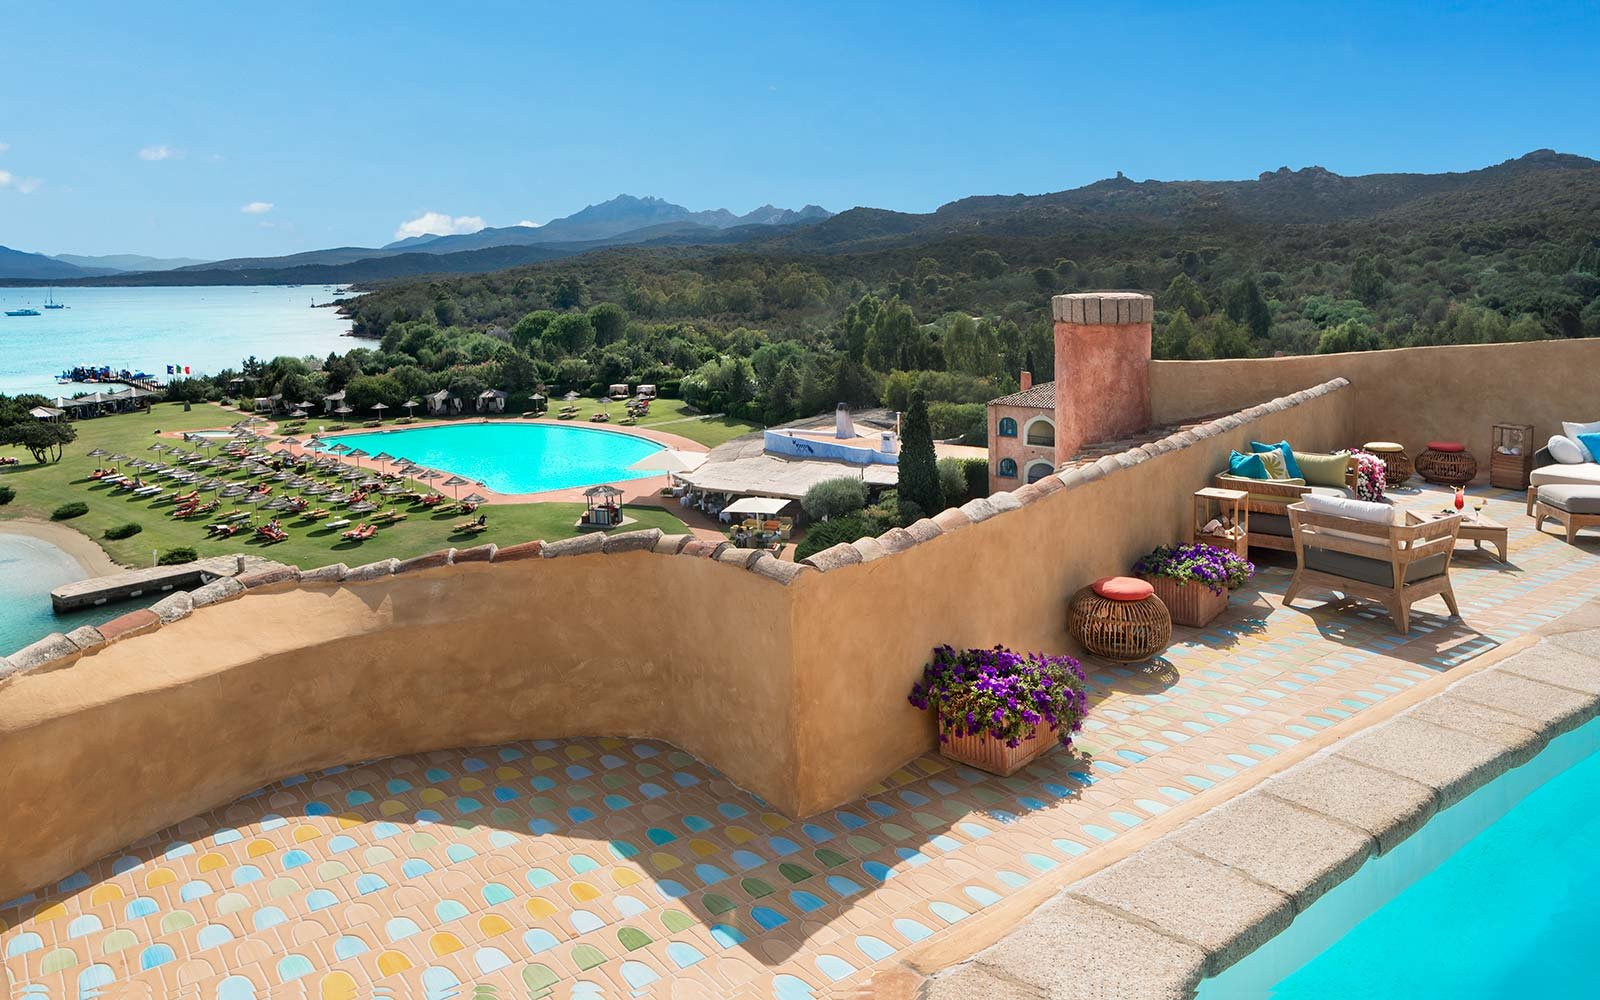 Penthouse Suite at Hotel Cala di Volpe, a Luxury Collection Hotel, Costa Smeralda, Sardinia, Italy